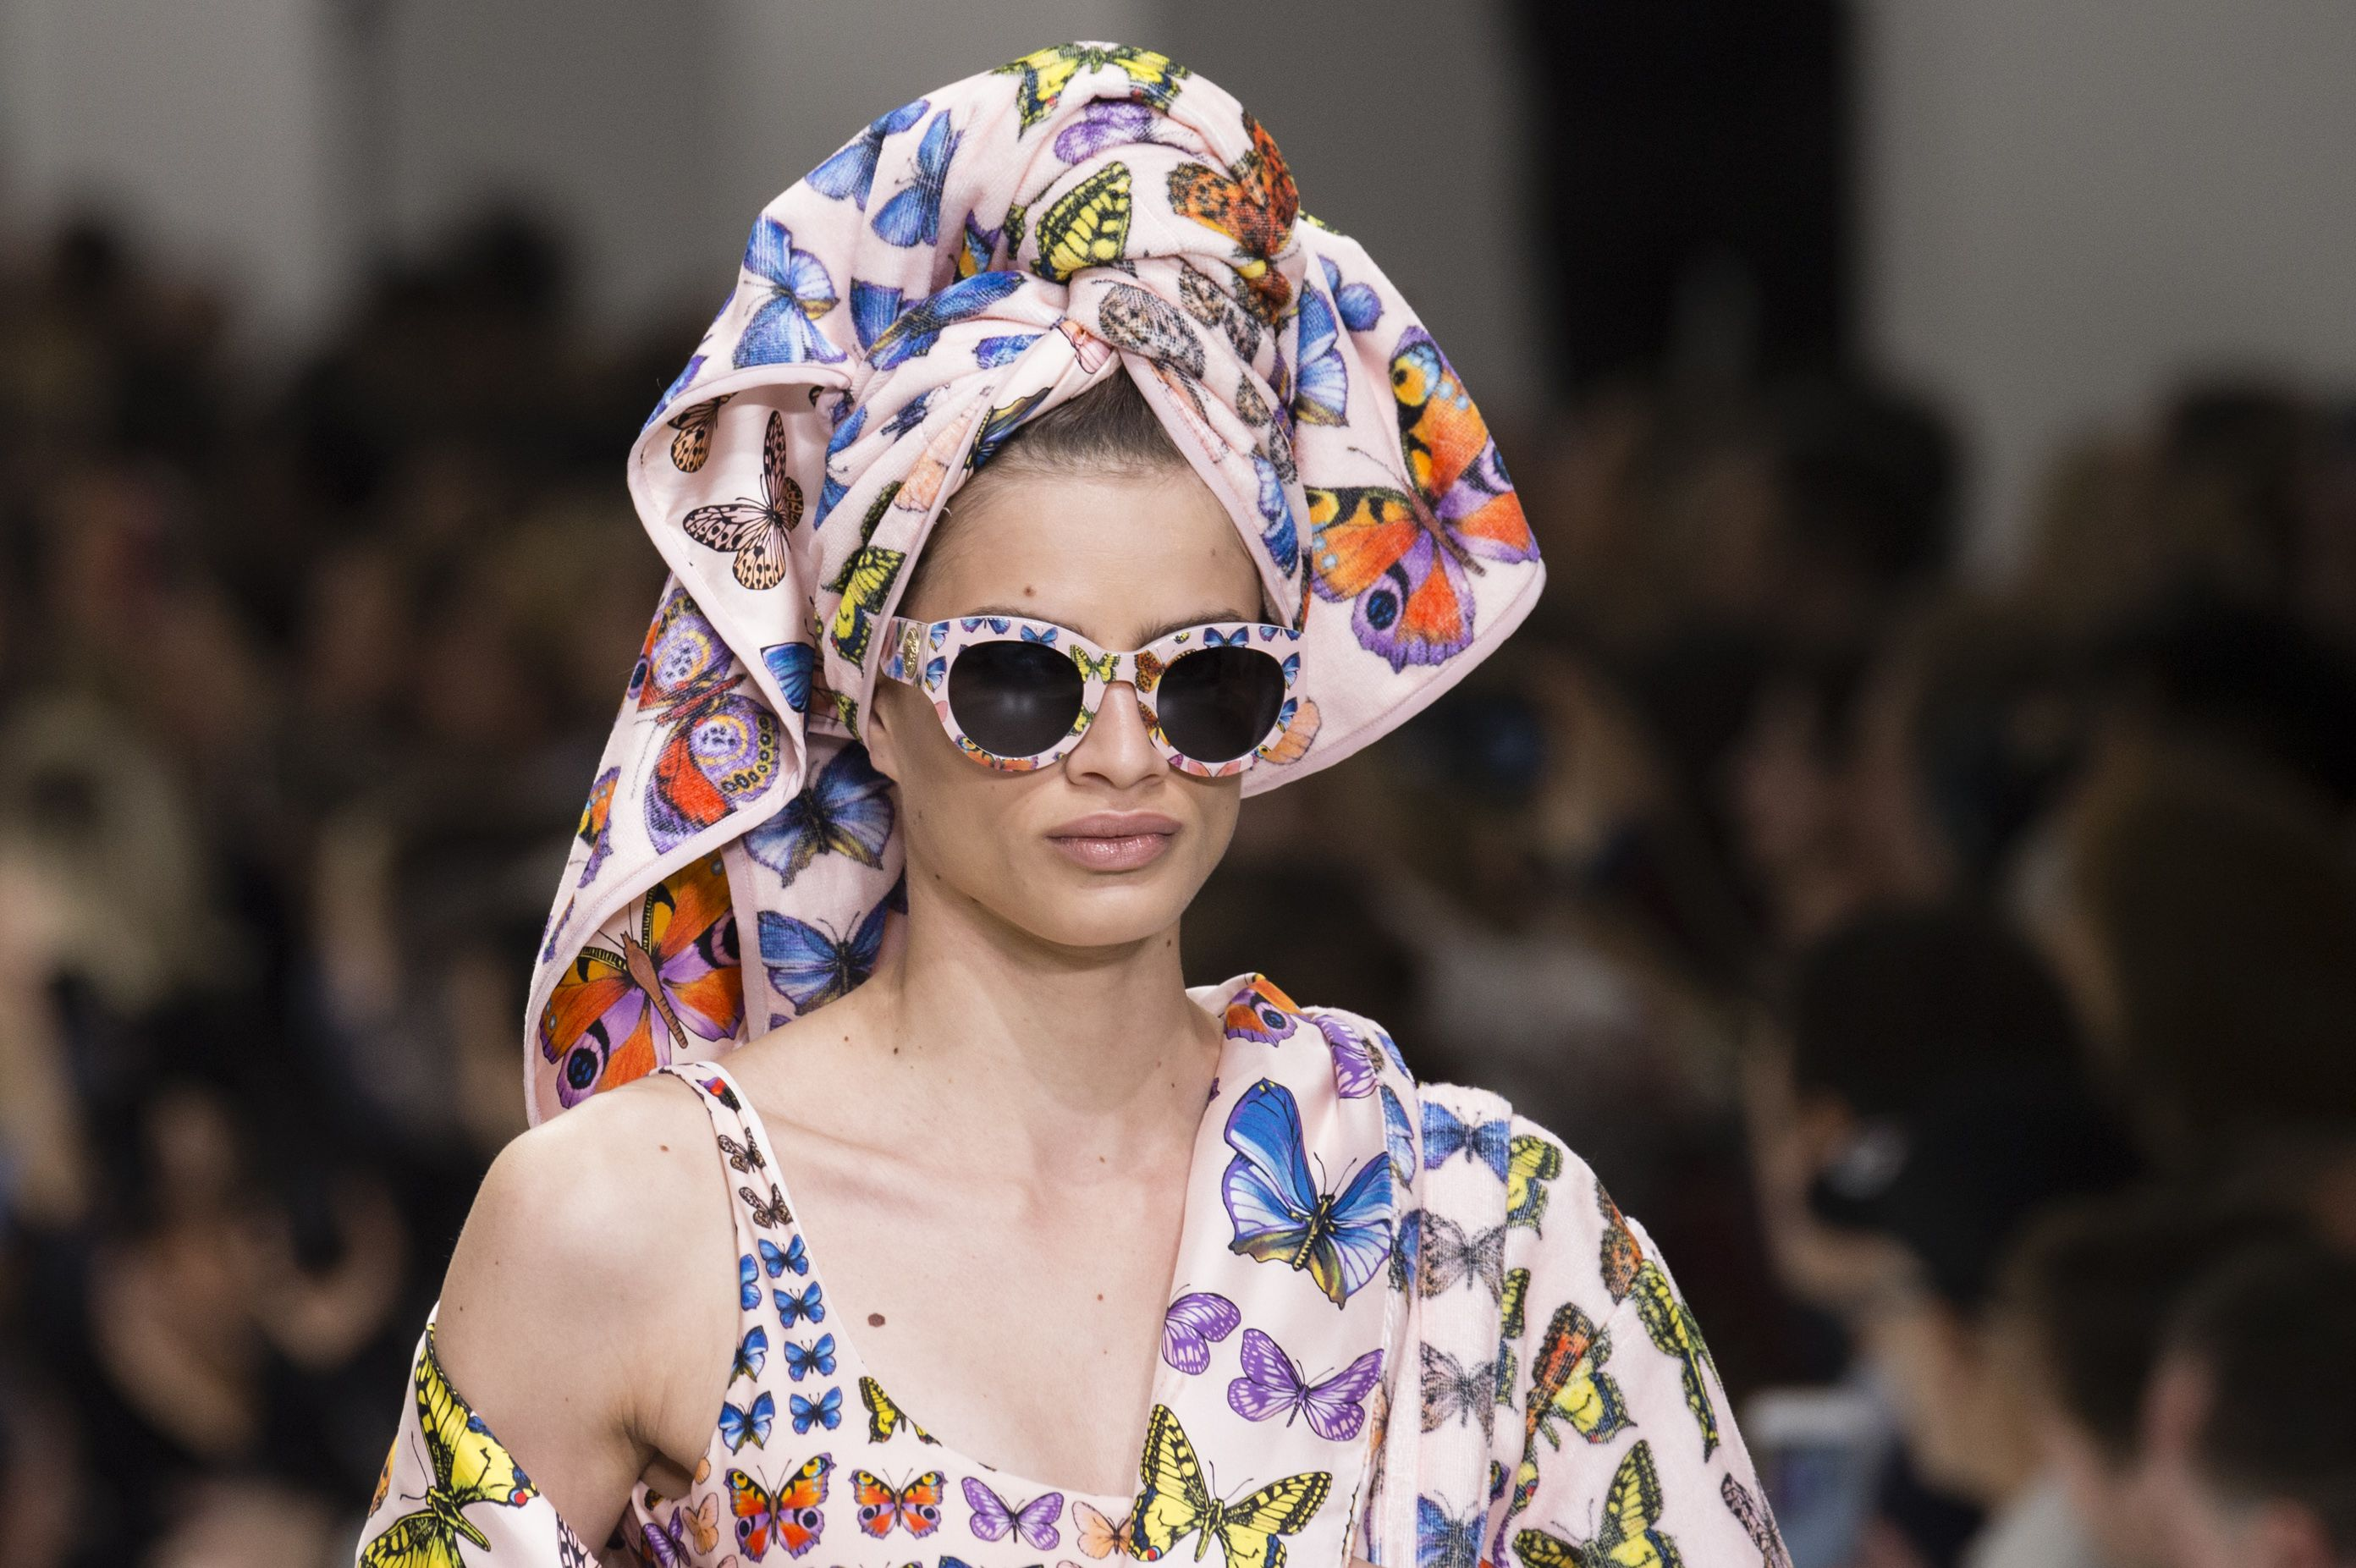 Spring 2018 Fashion Trend Stylish Bath Robes As Seen On The Runways Rita Ora And More